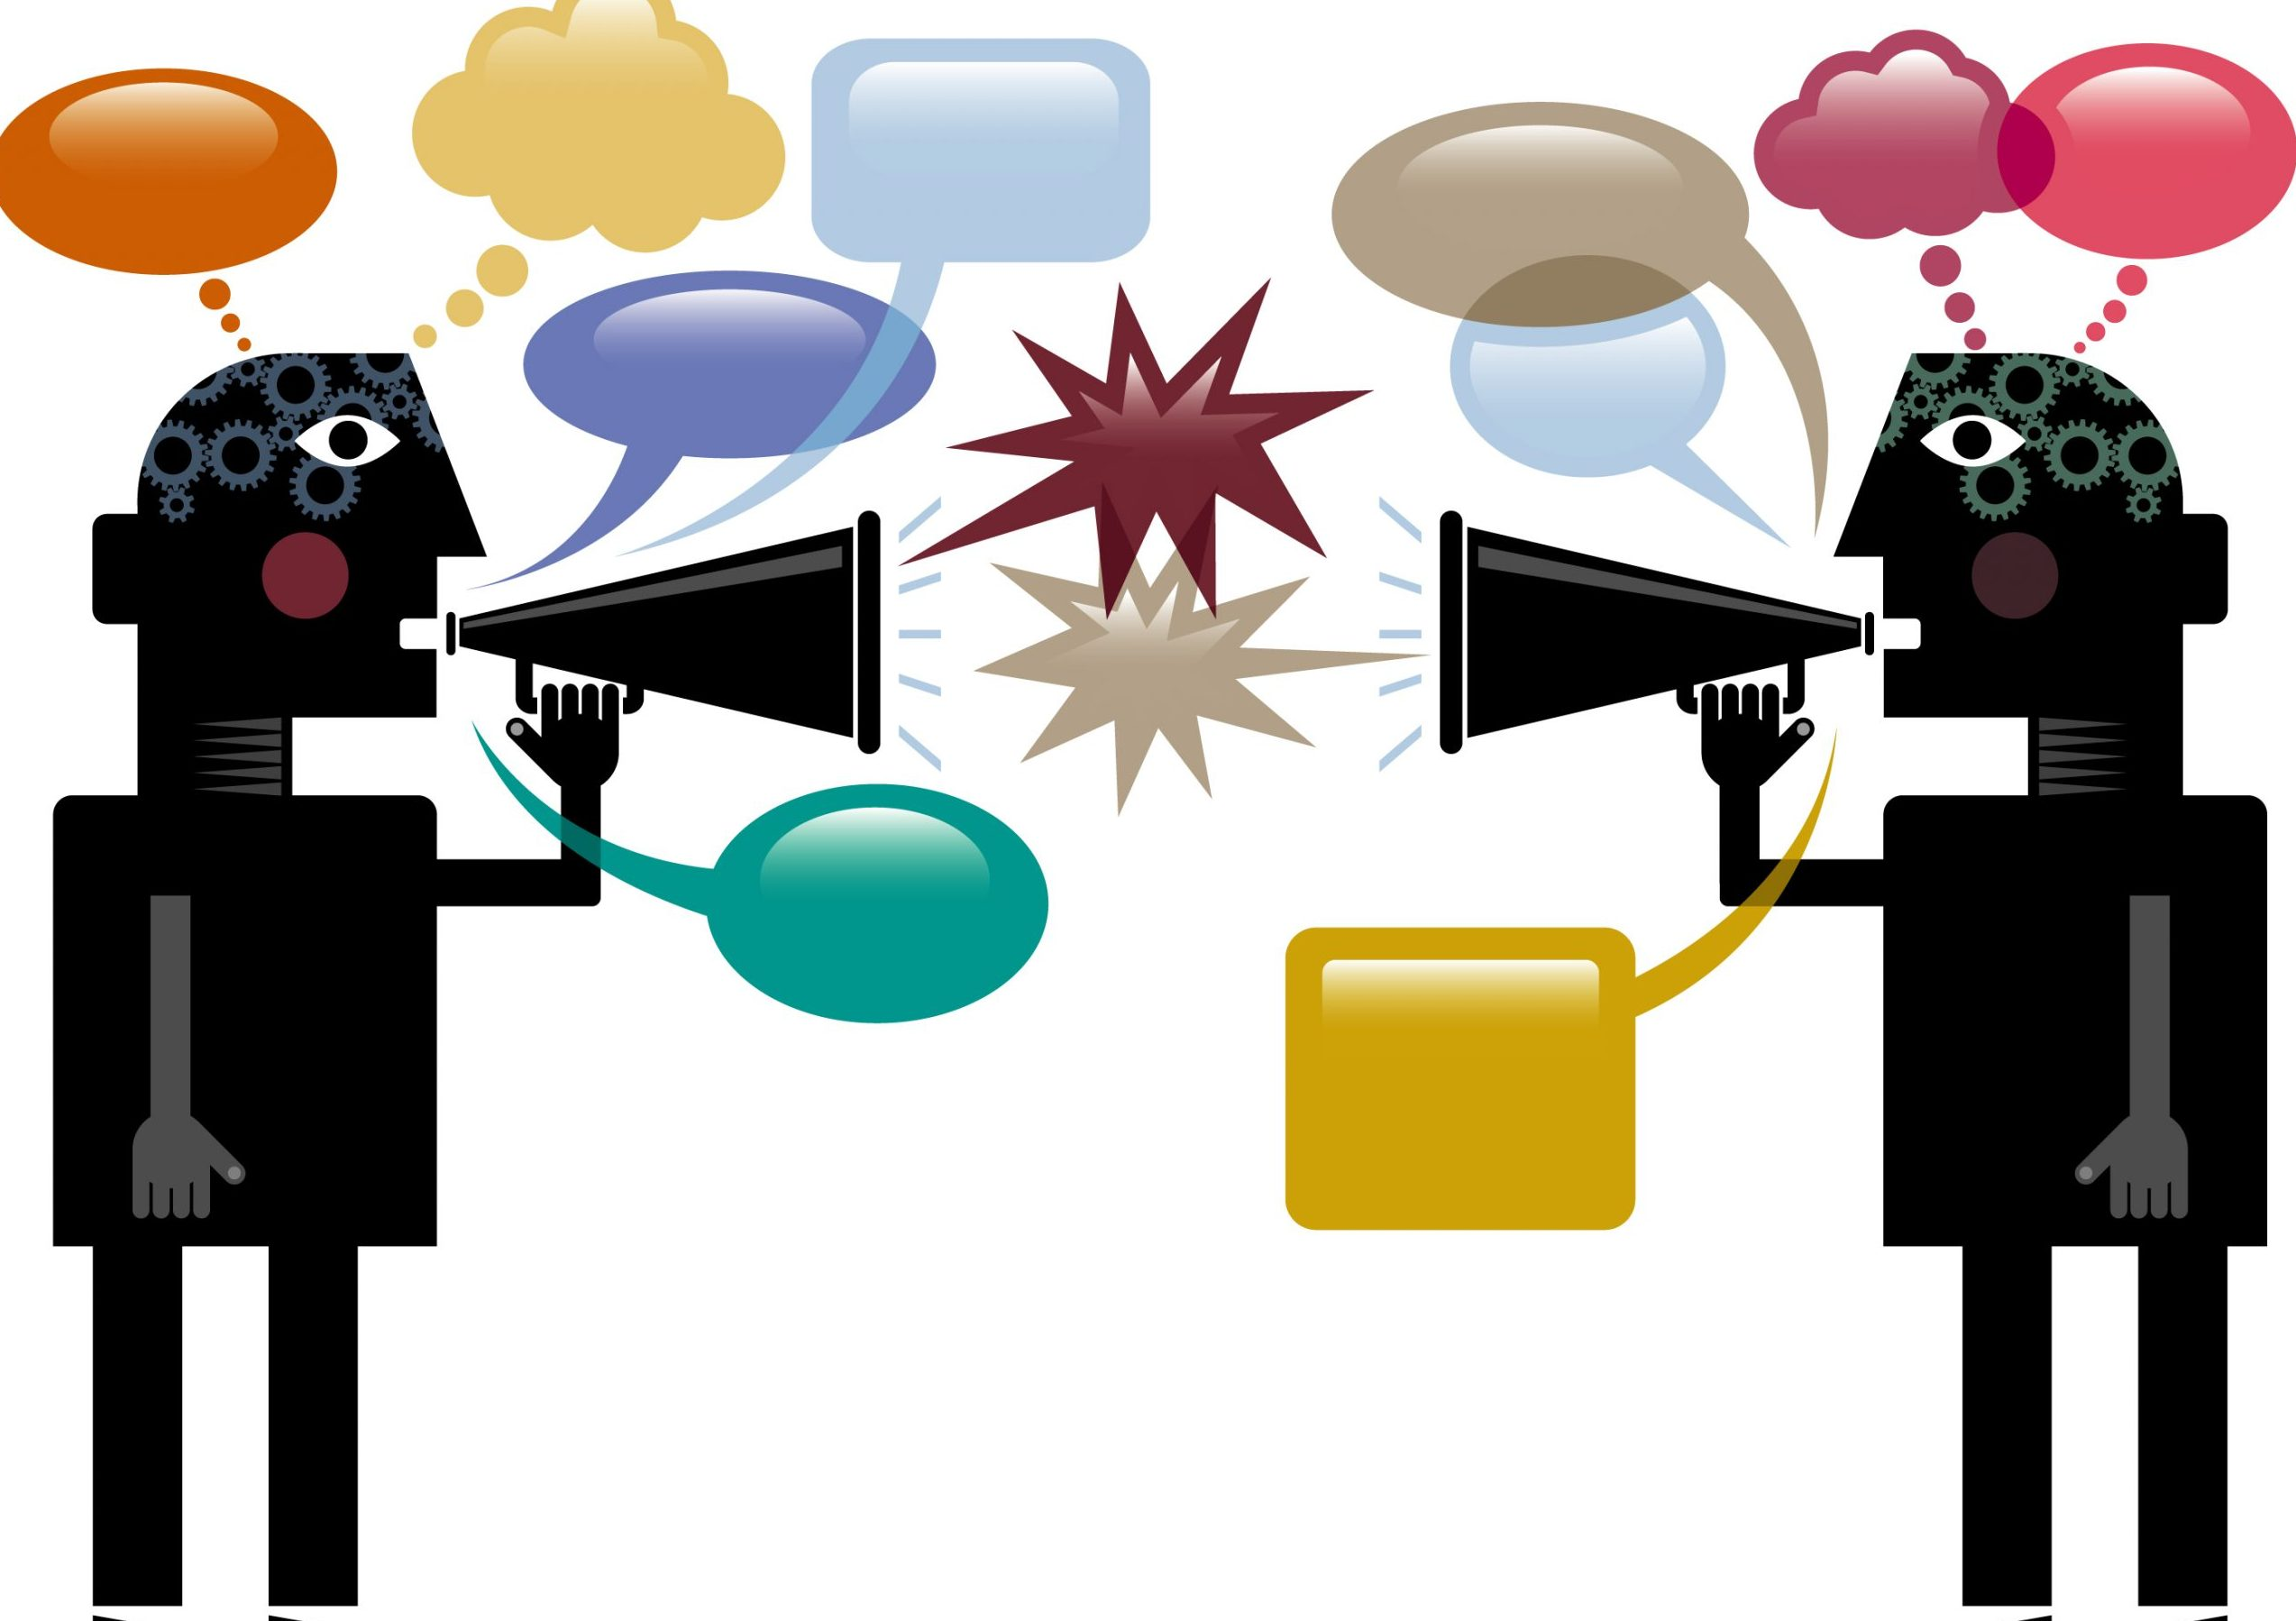 Two stylized figures with megaphones arguing with each other.